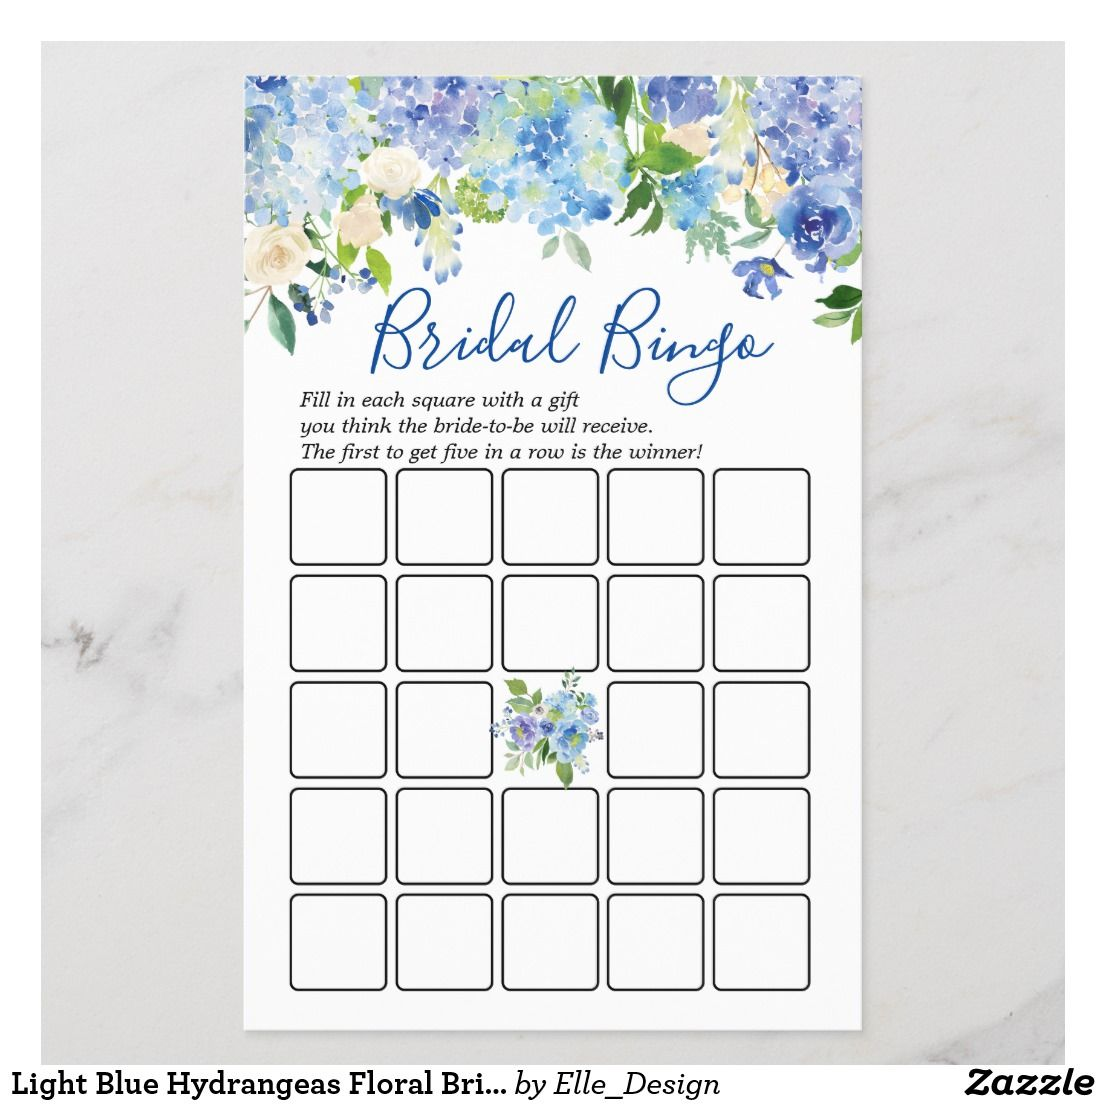 Light Blue Hydrangeas Floral Bridal Shower Game   Zazzle ...